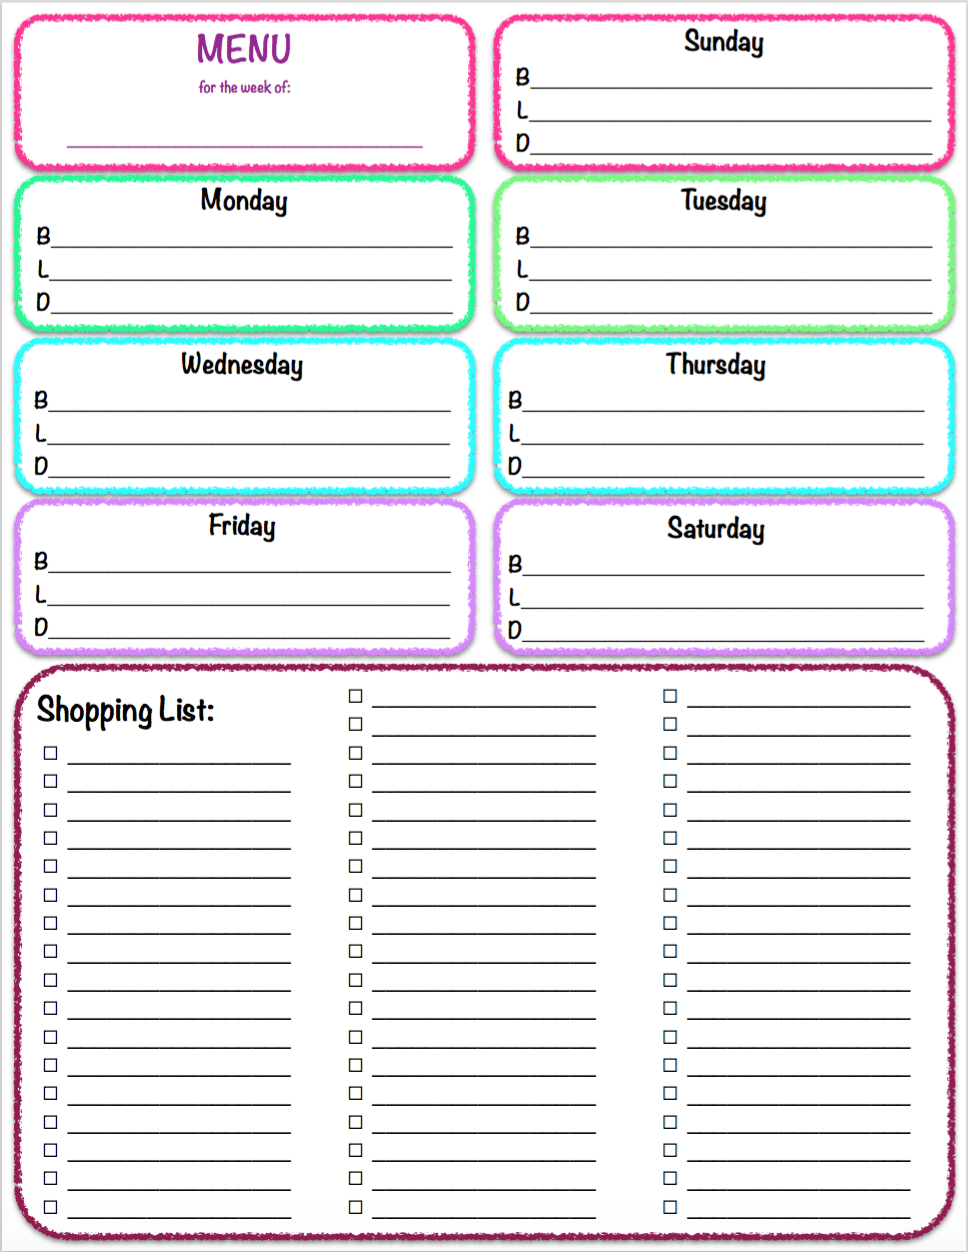 meal planning template with grocery list - free printables weekly meal planner grocery list the